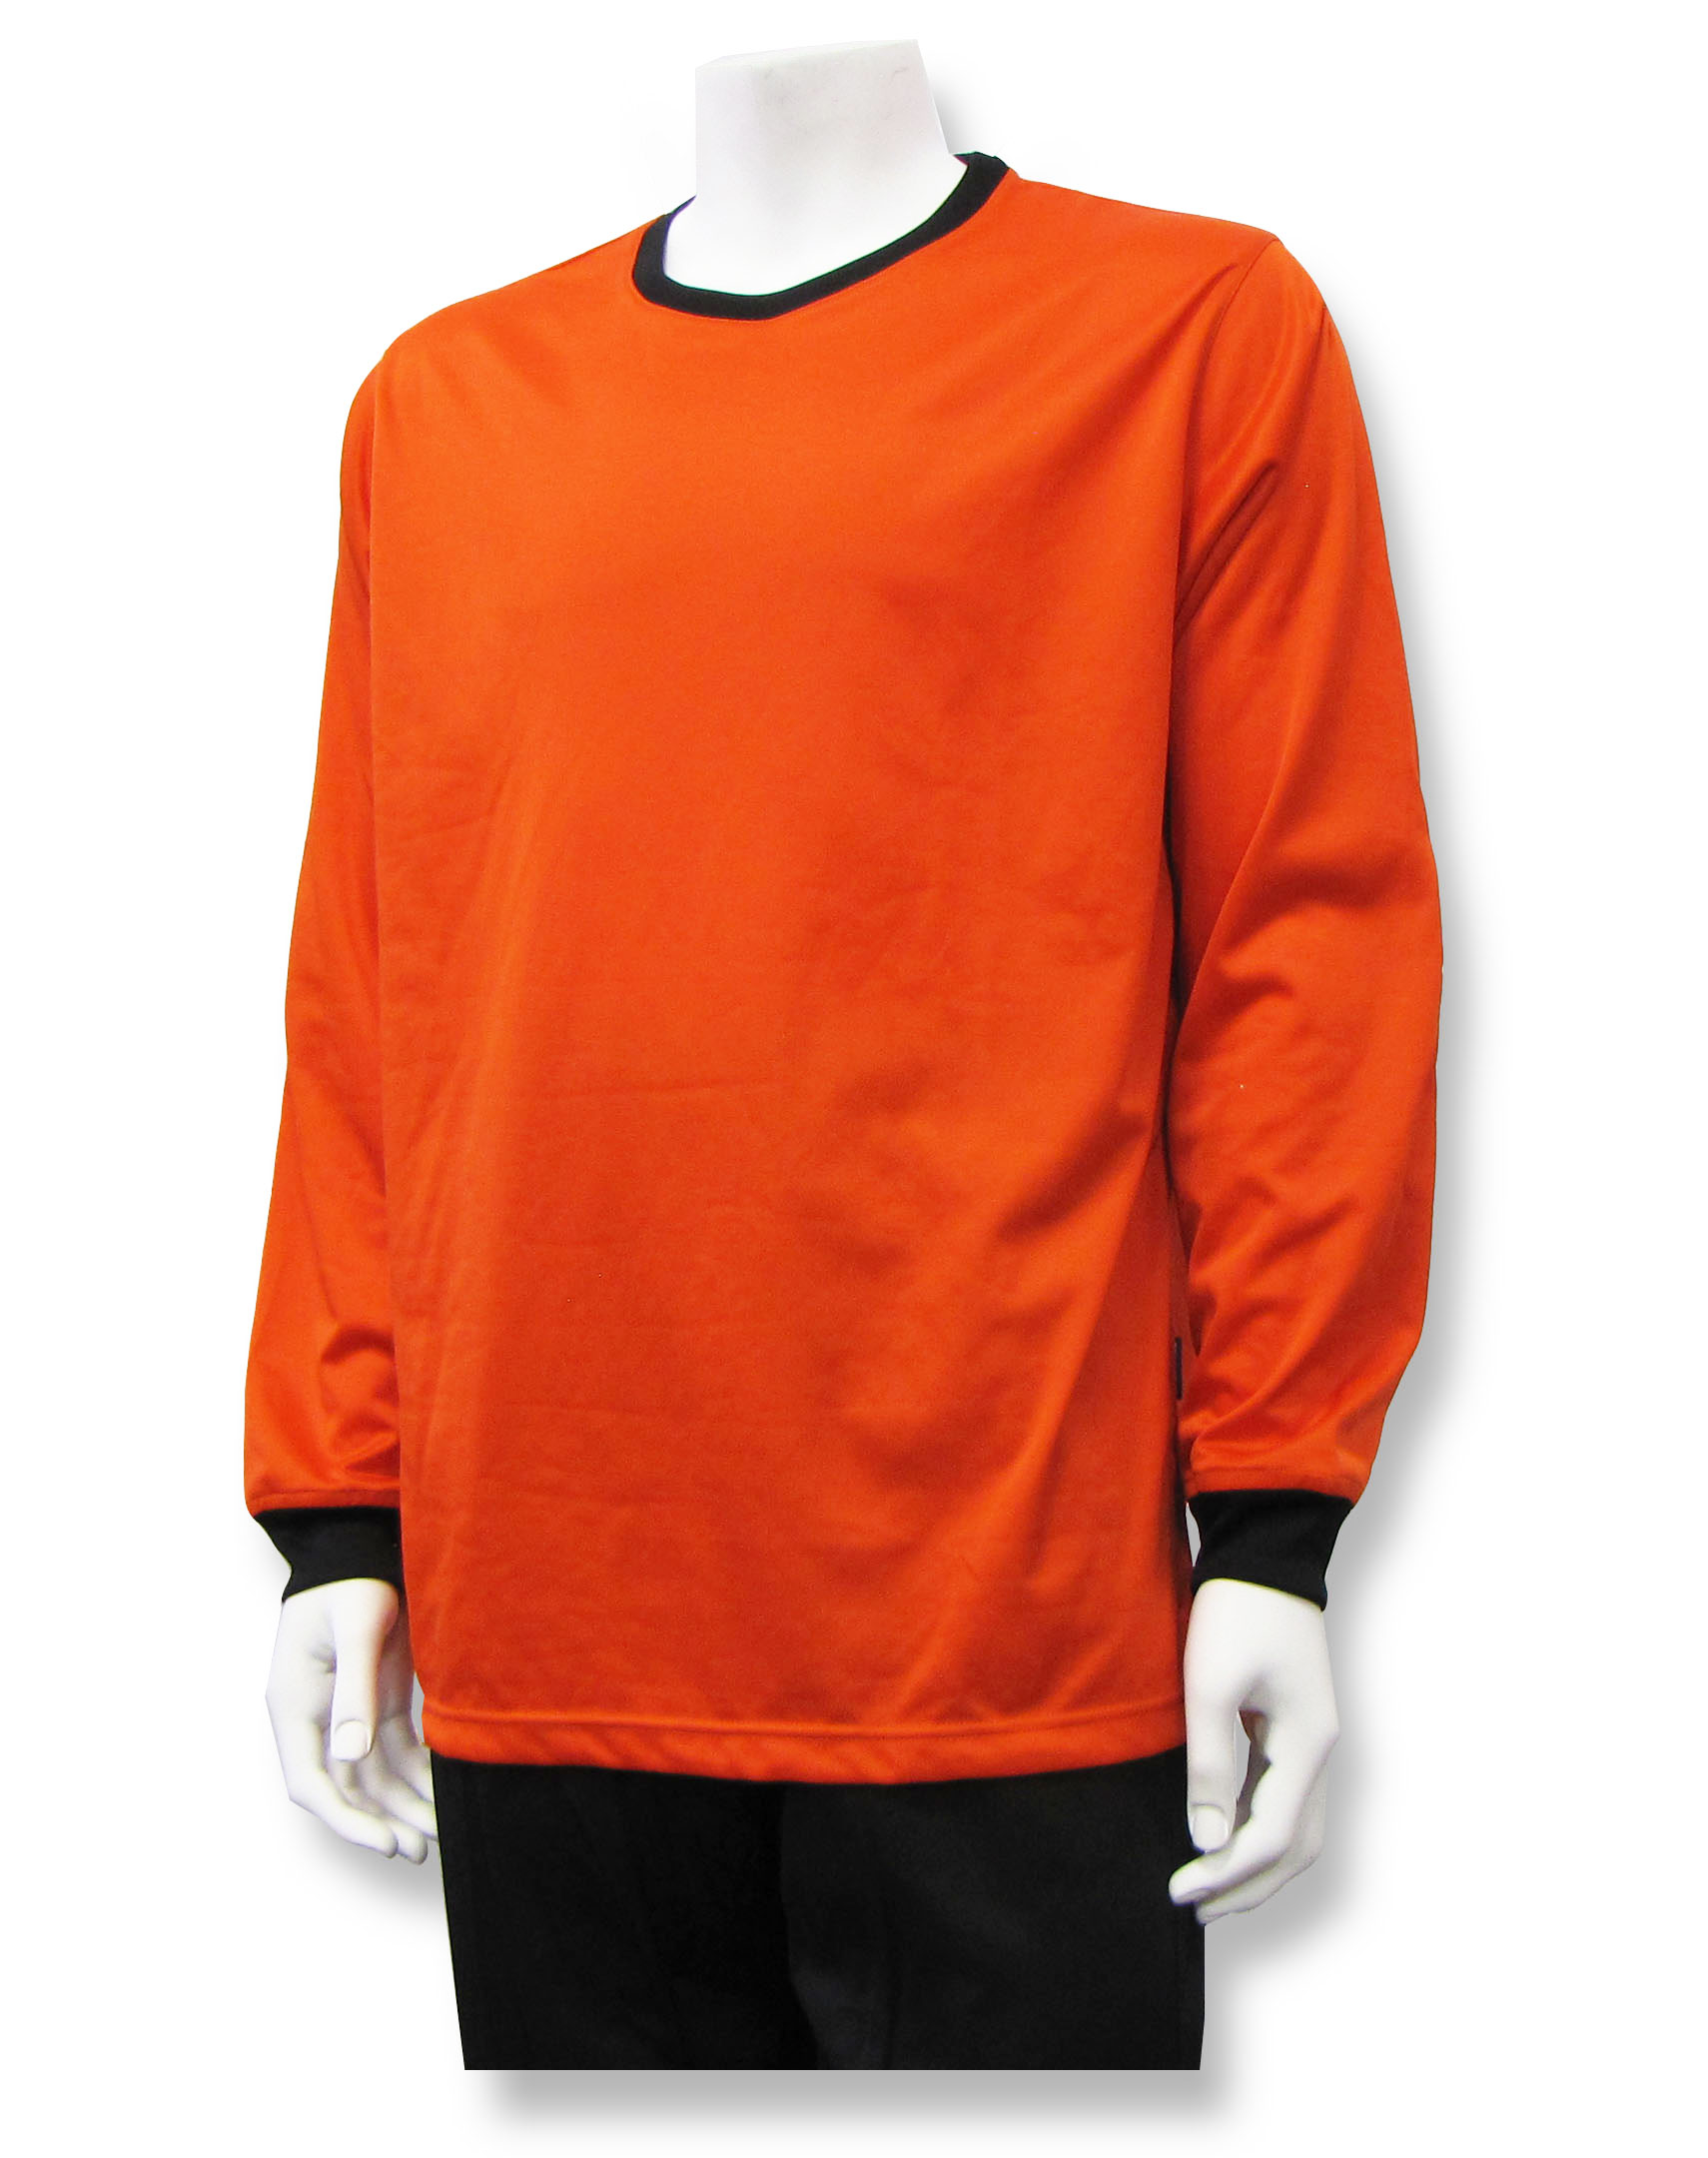 Long sleeve goalie jersey in orange by Code Four Atheltics